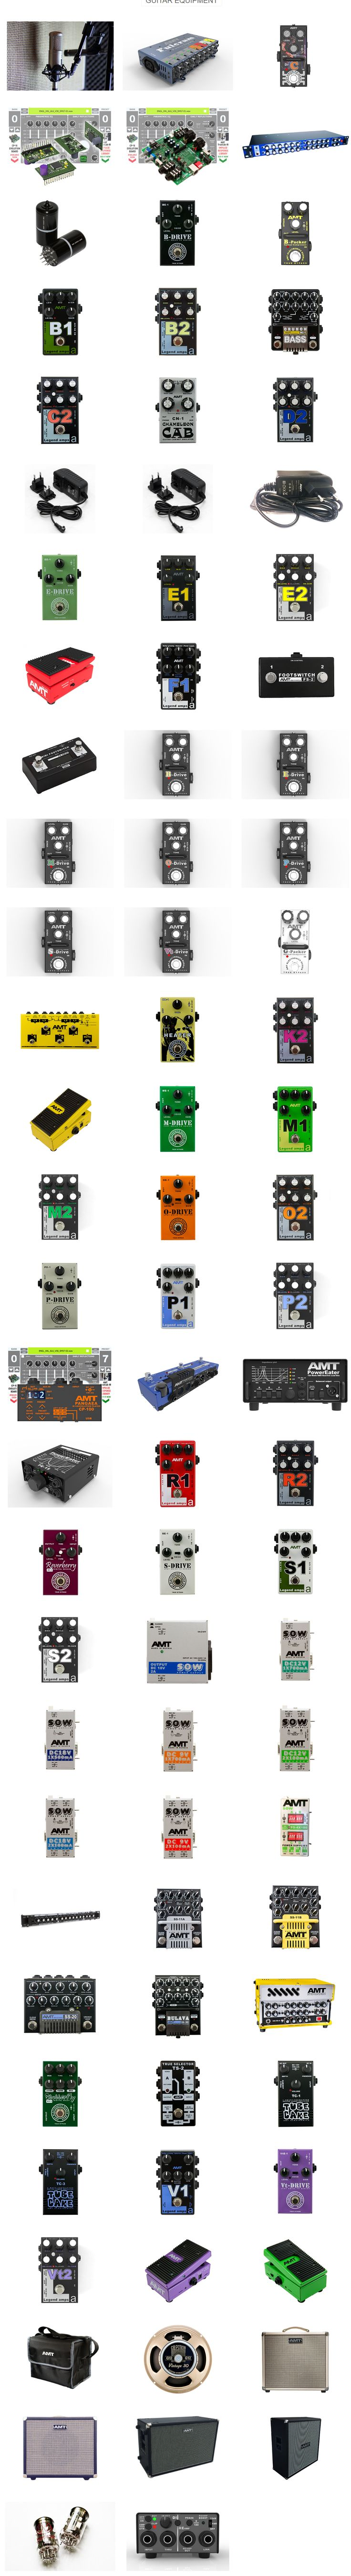 Choose what you need! http://amtelectronics.com/new/products/